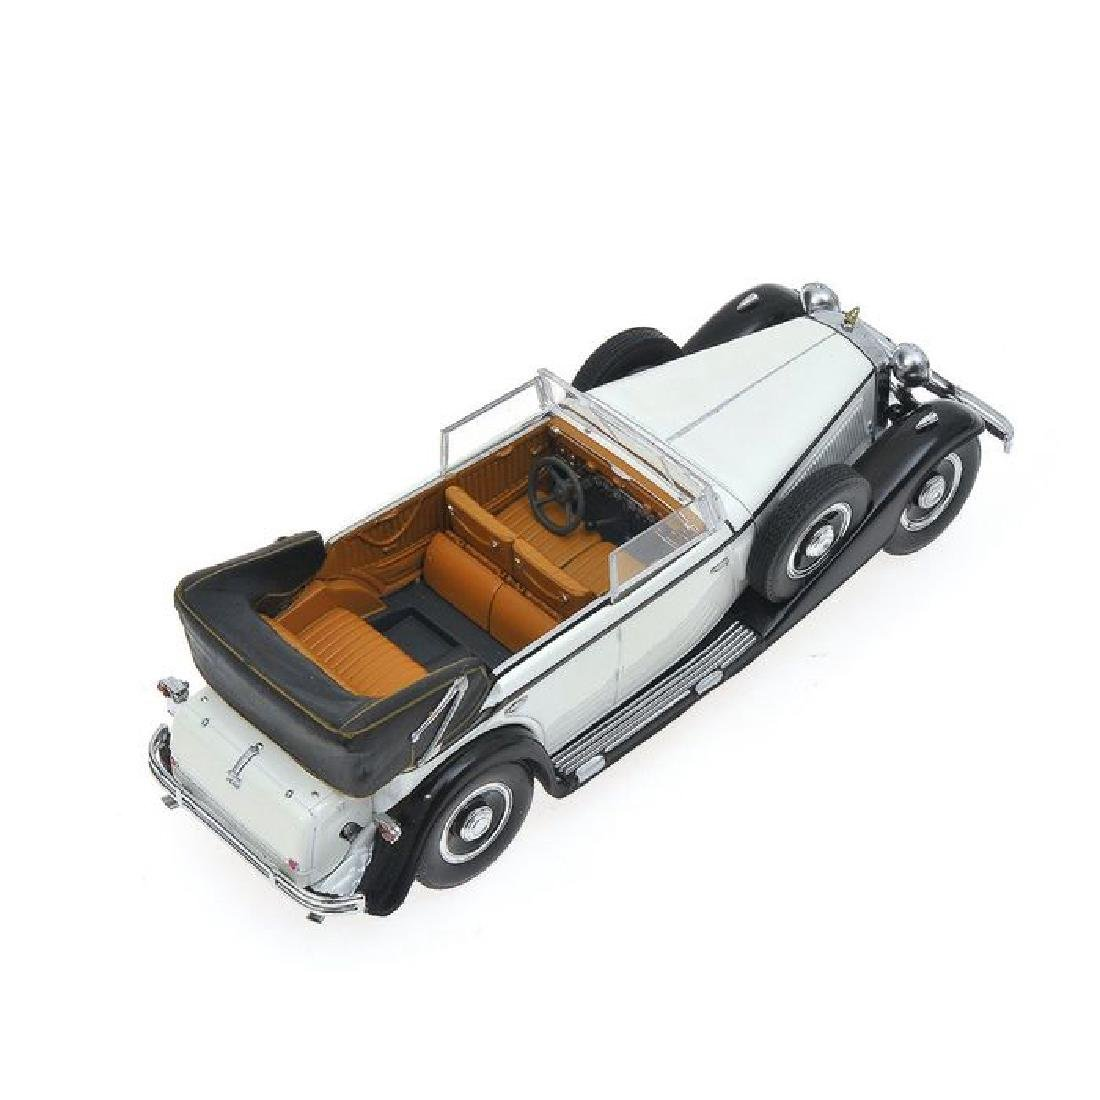 Minichamps Scale 1:43 Maybach Zeppelin DS8 1932 - 8